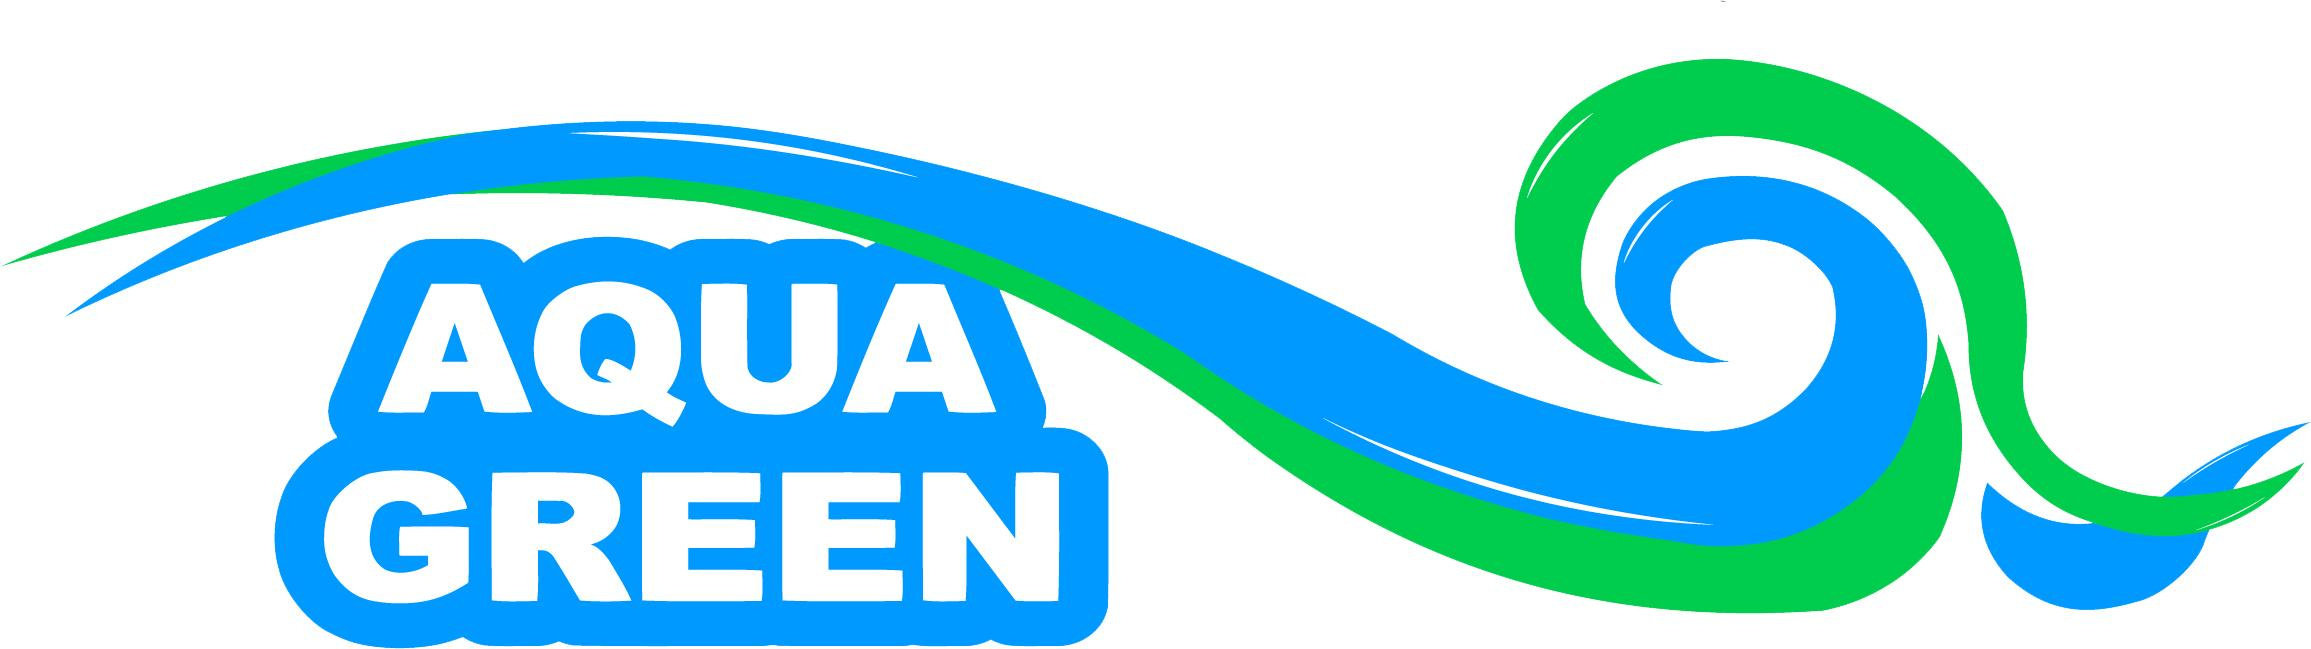 aquagreen logo_1_13